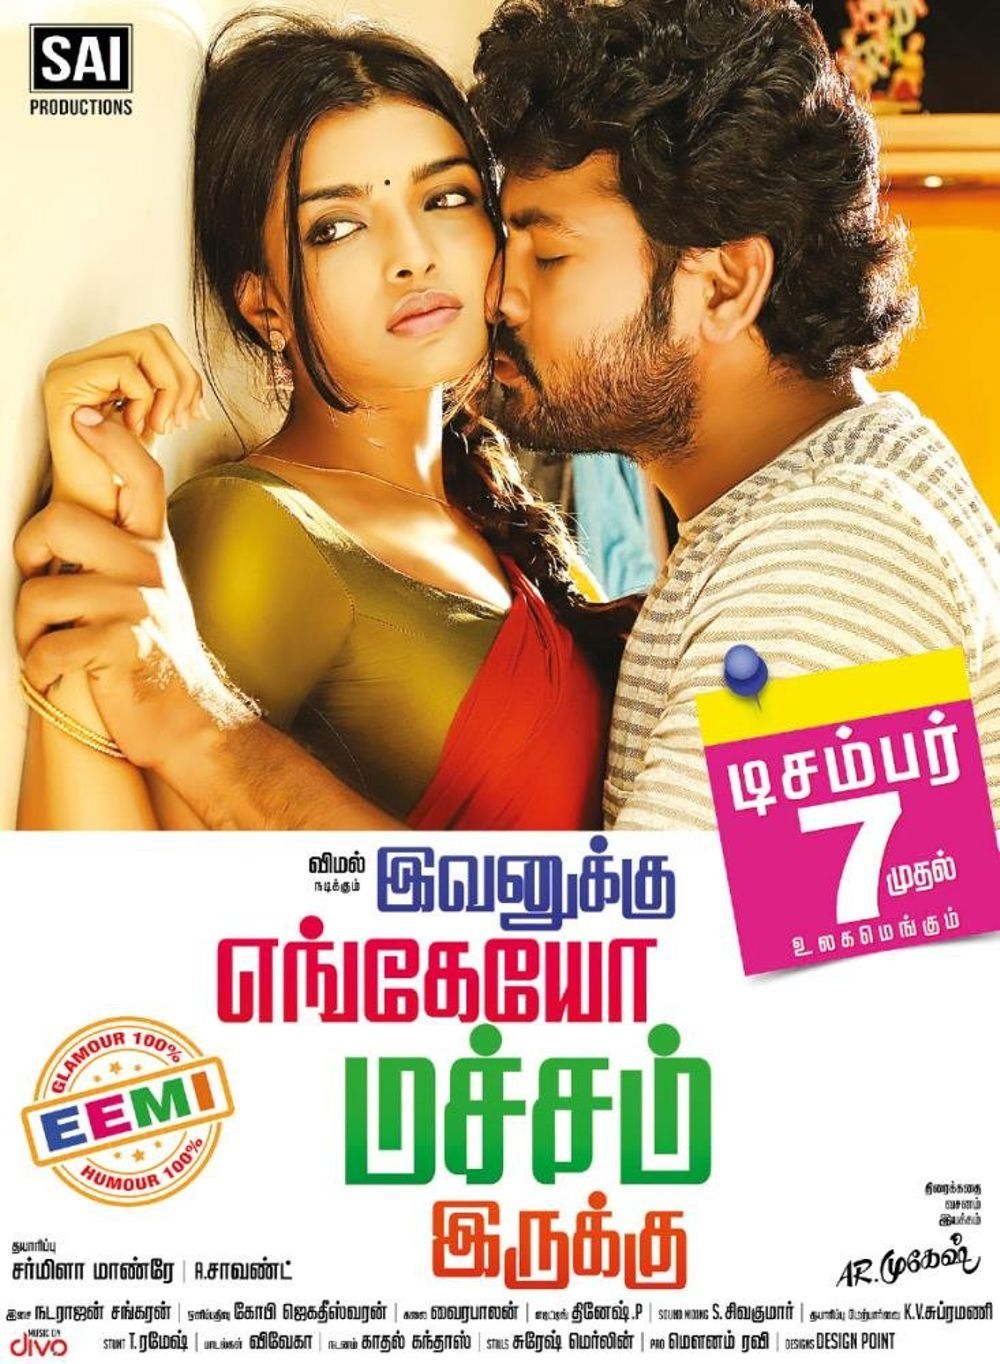 Ivanukku Engaiyo Macham Iruku Movie Review